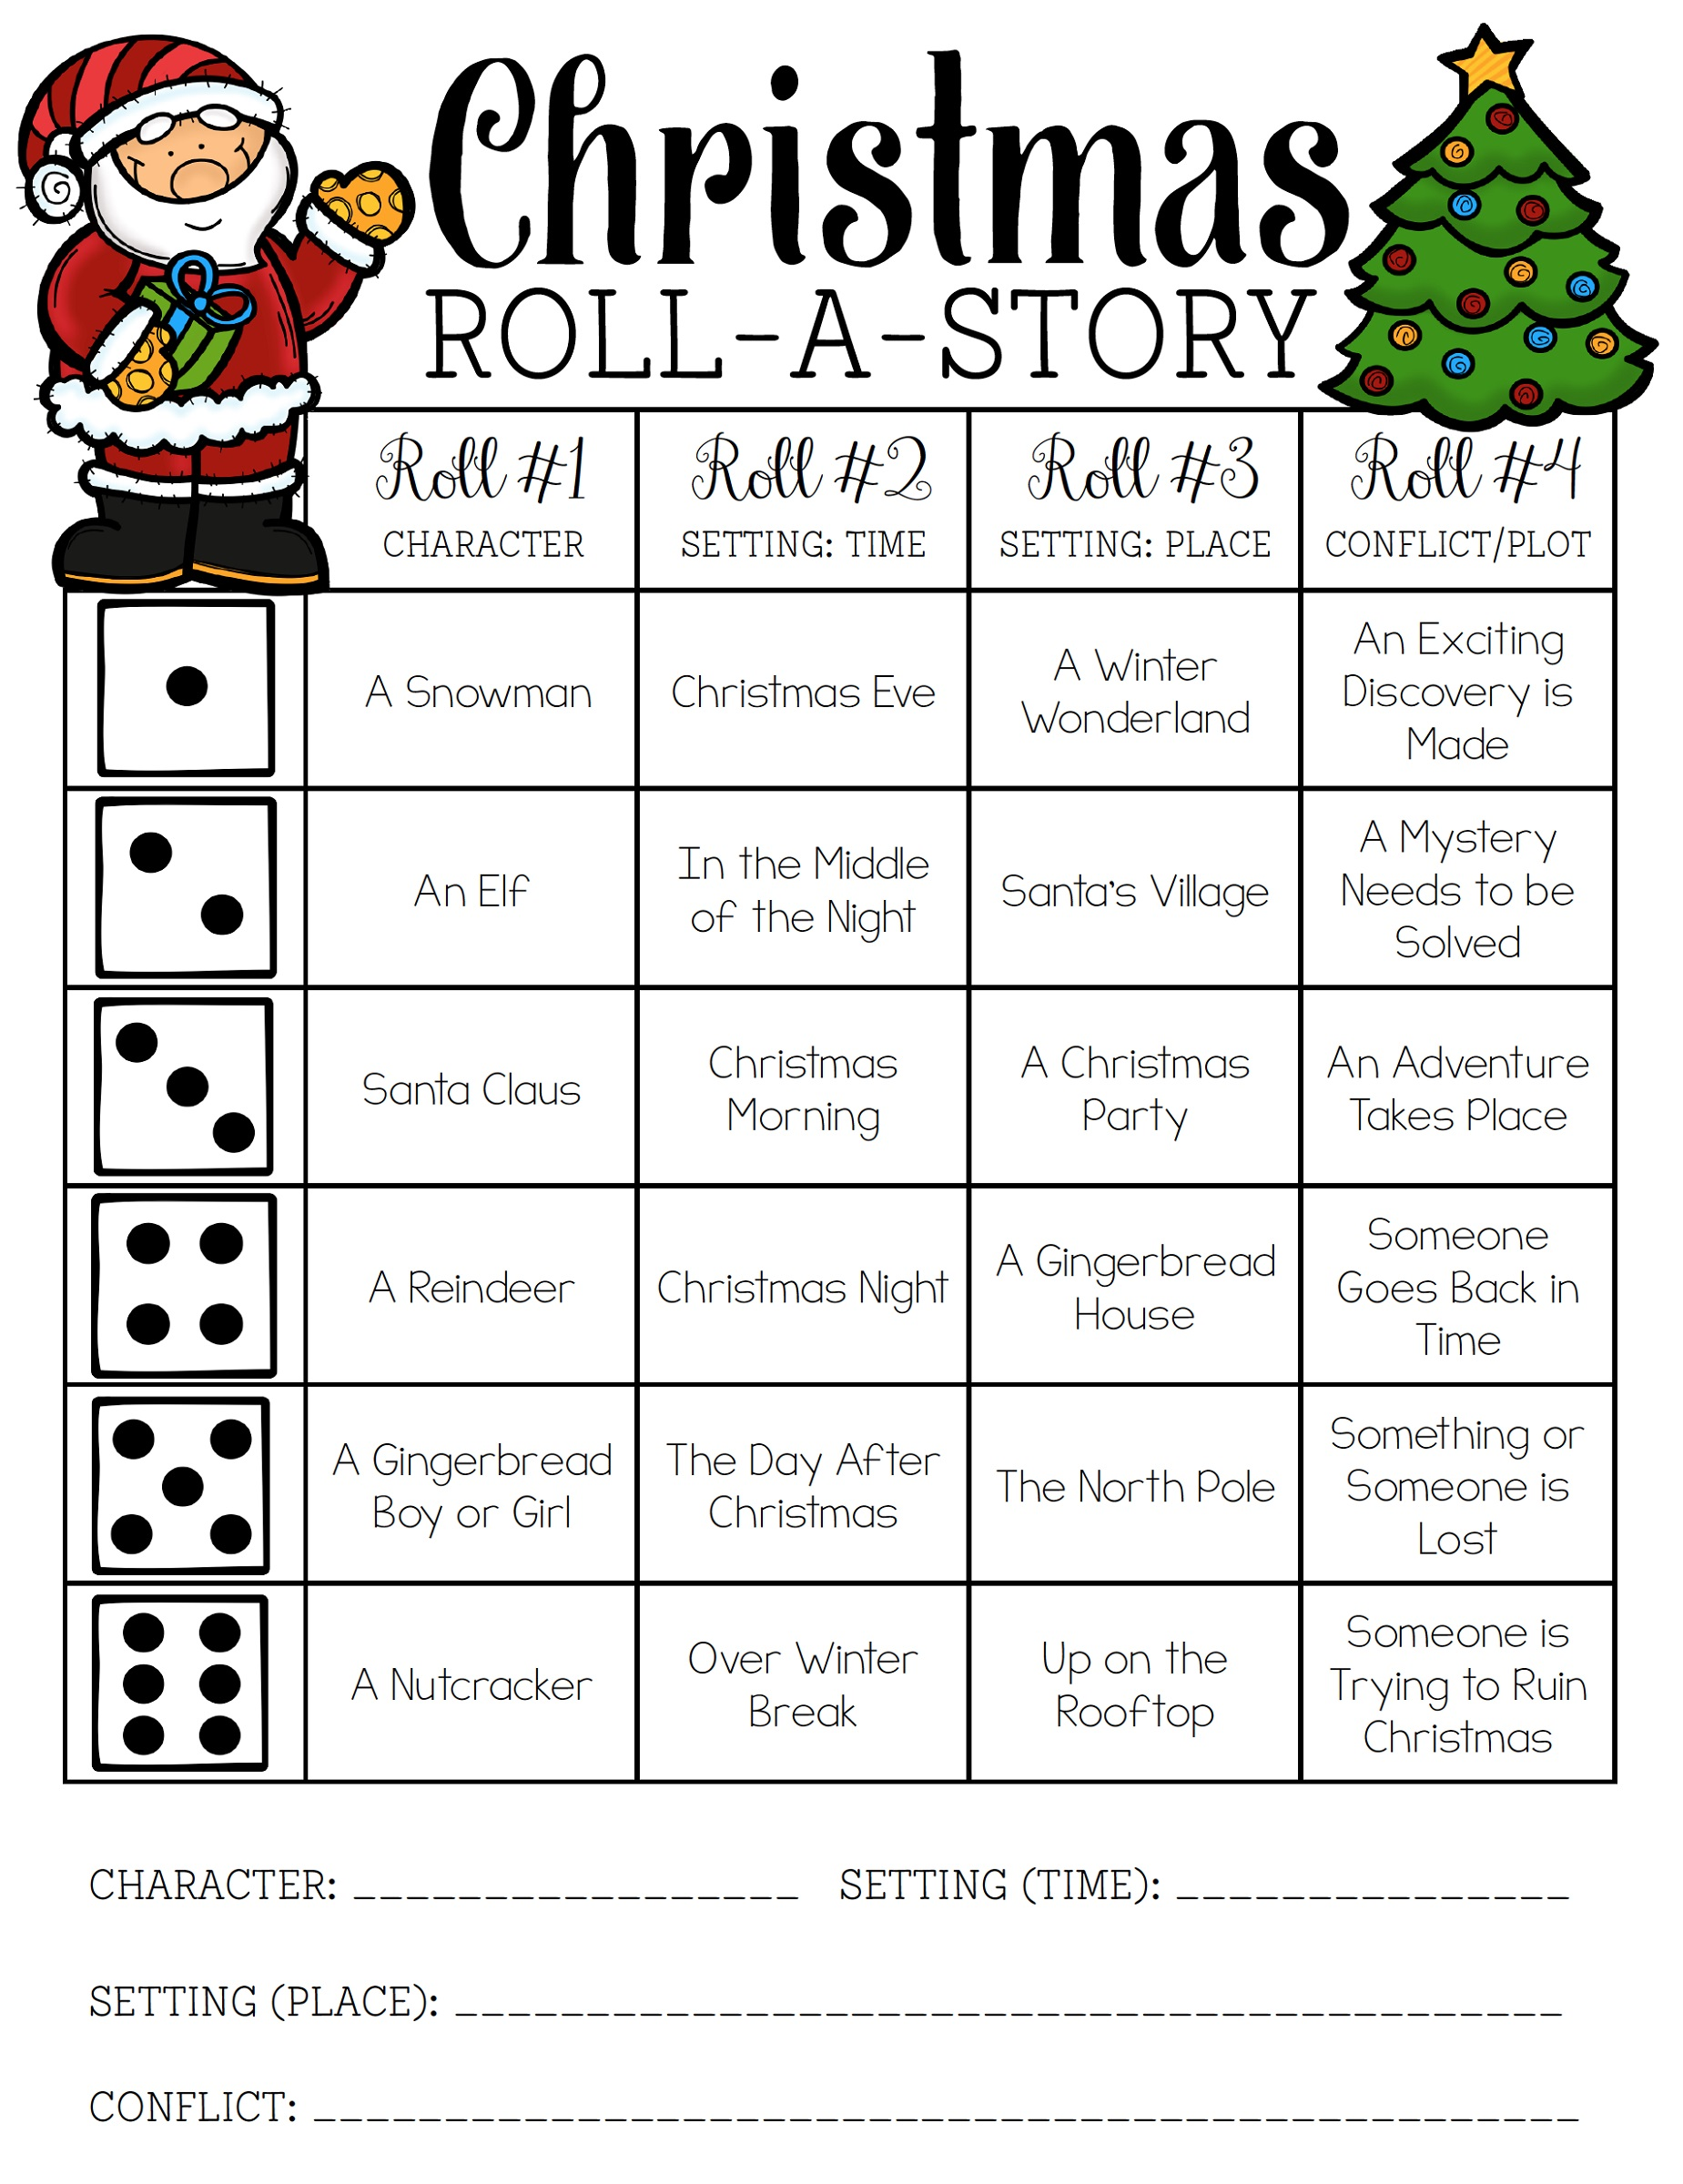 Christmas Activities for Kids Roll a Story